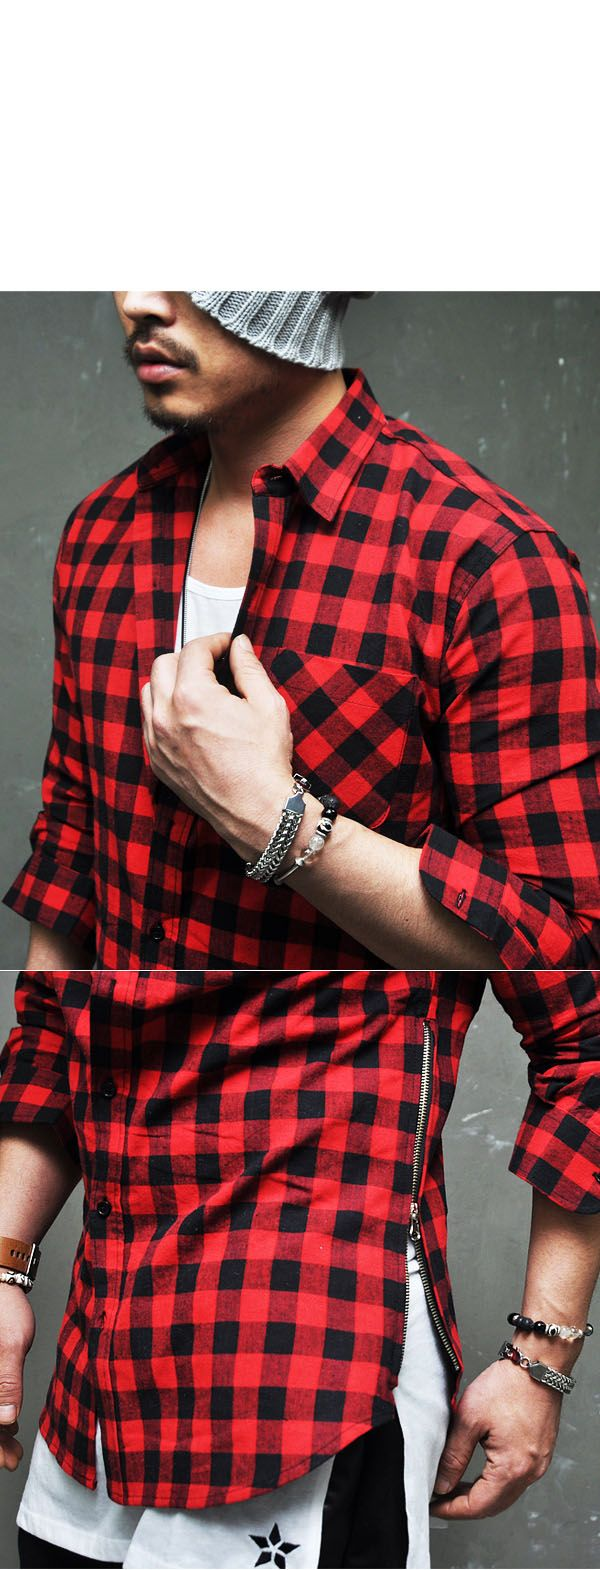 Tops :: Shirts :: Must-have Side Zip Red Flannel Shirt-Shirt 113 - Mens Fashion Clothing For An Attractive Guy Look